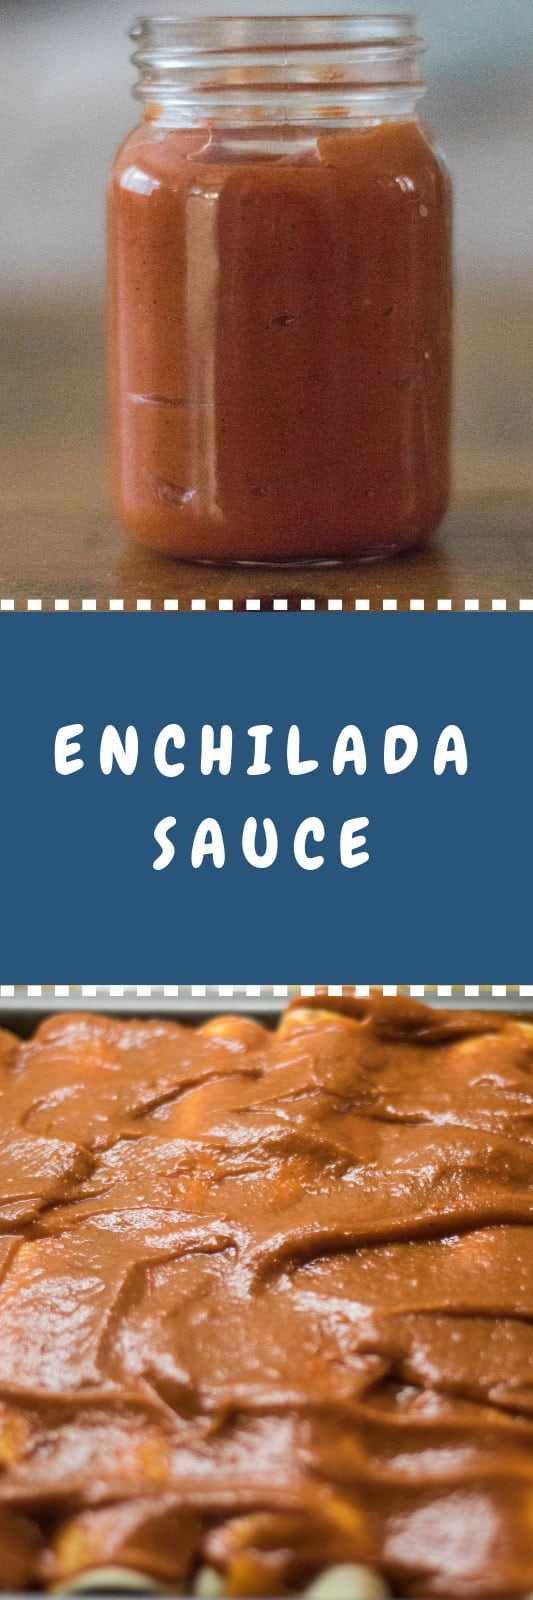 This easy enchilada sauce recipe takes very little time and will add even more flavour to your enchiladas. You will not buy store brought sauces after this.